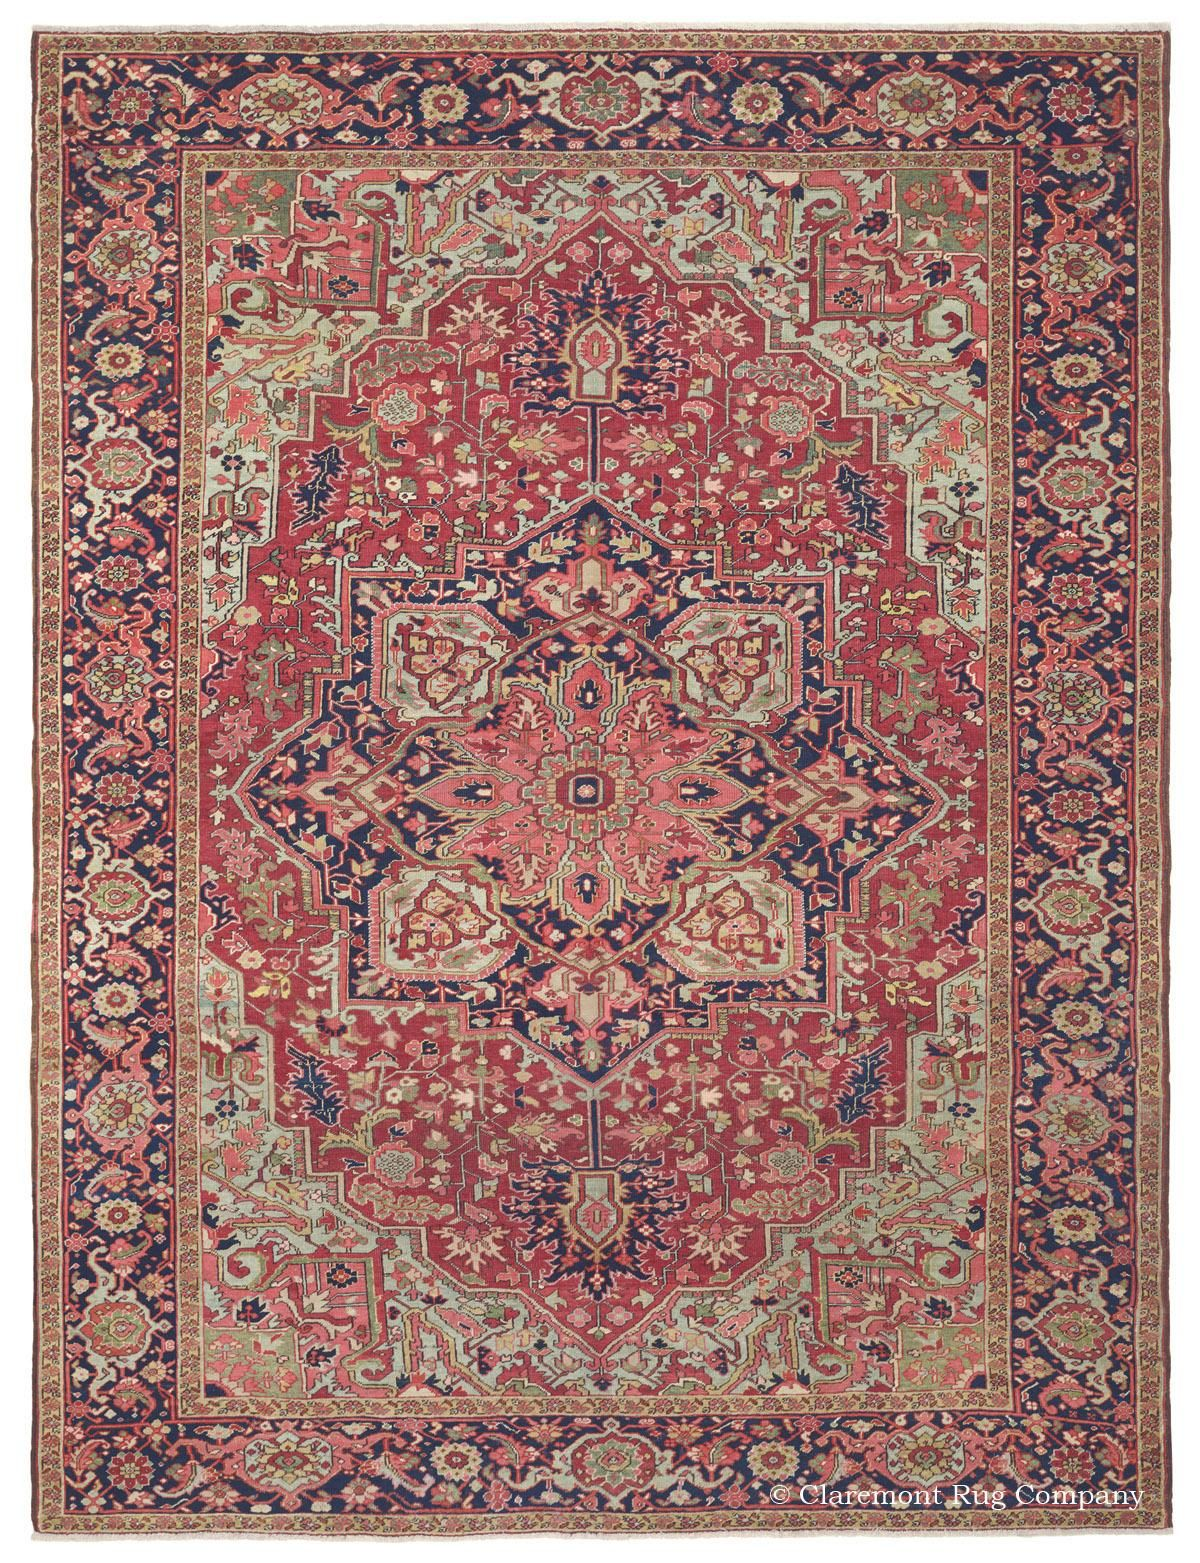 Sorry This Rug Is No Longer Available Claremont Rug Company Antique Persian Carpet Persian Carpet Rugs On Carpet